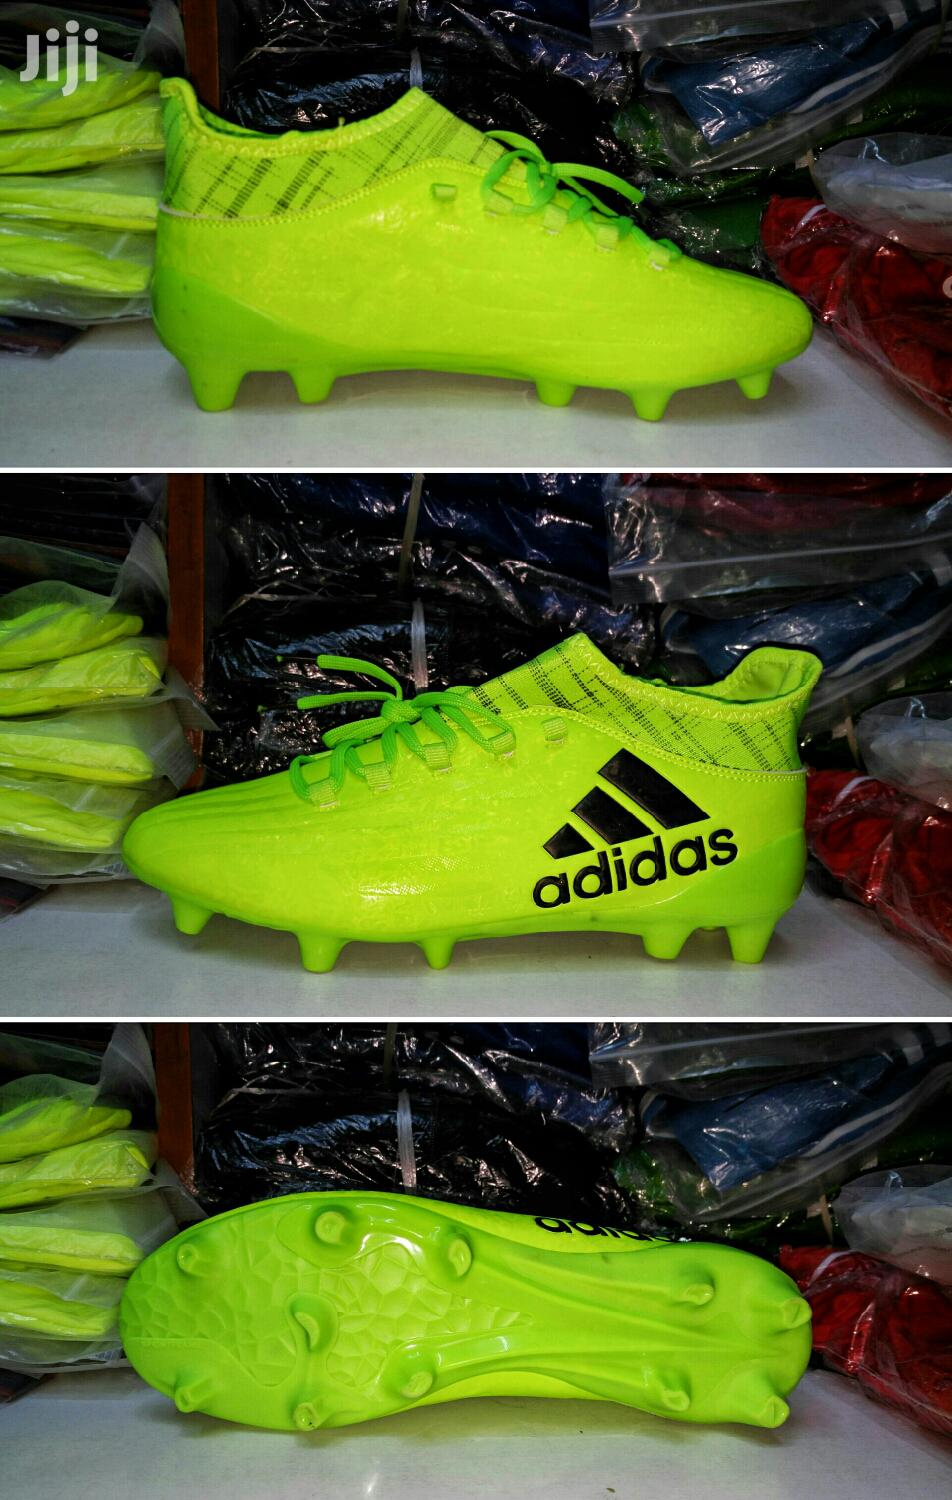 nike and adidas soccer boots